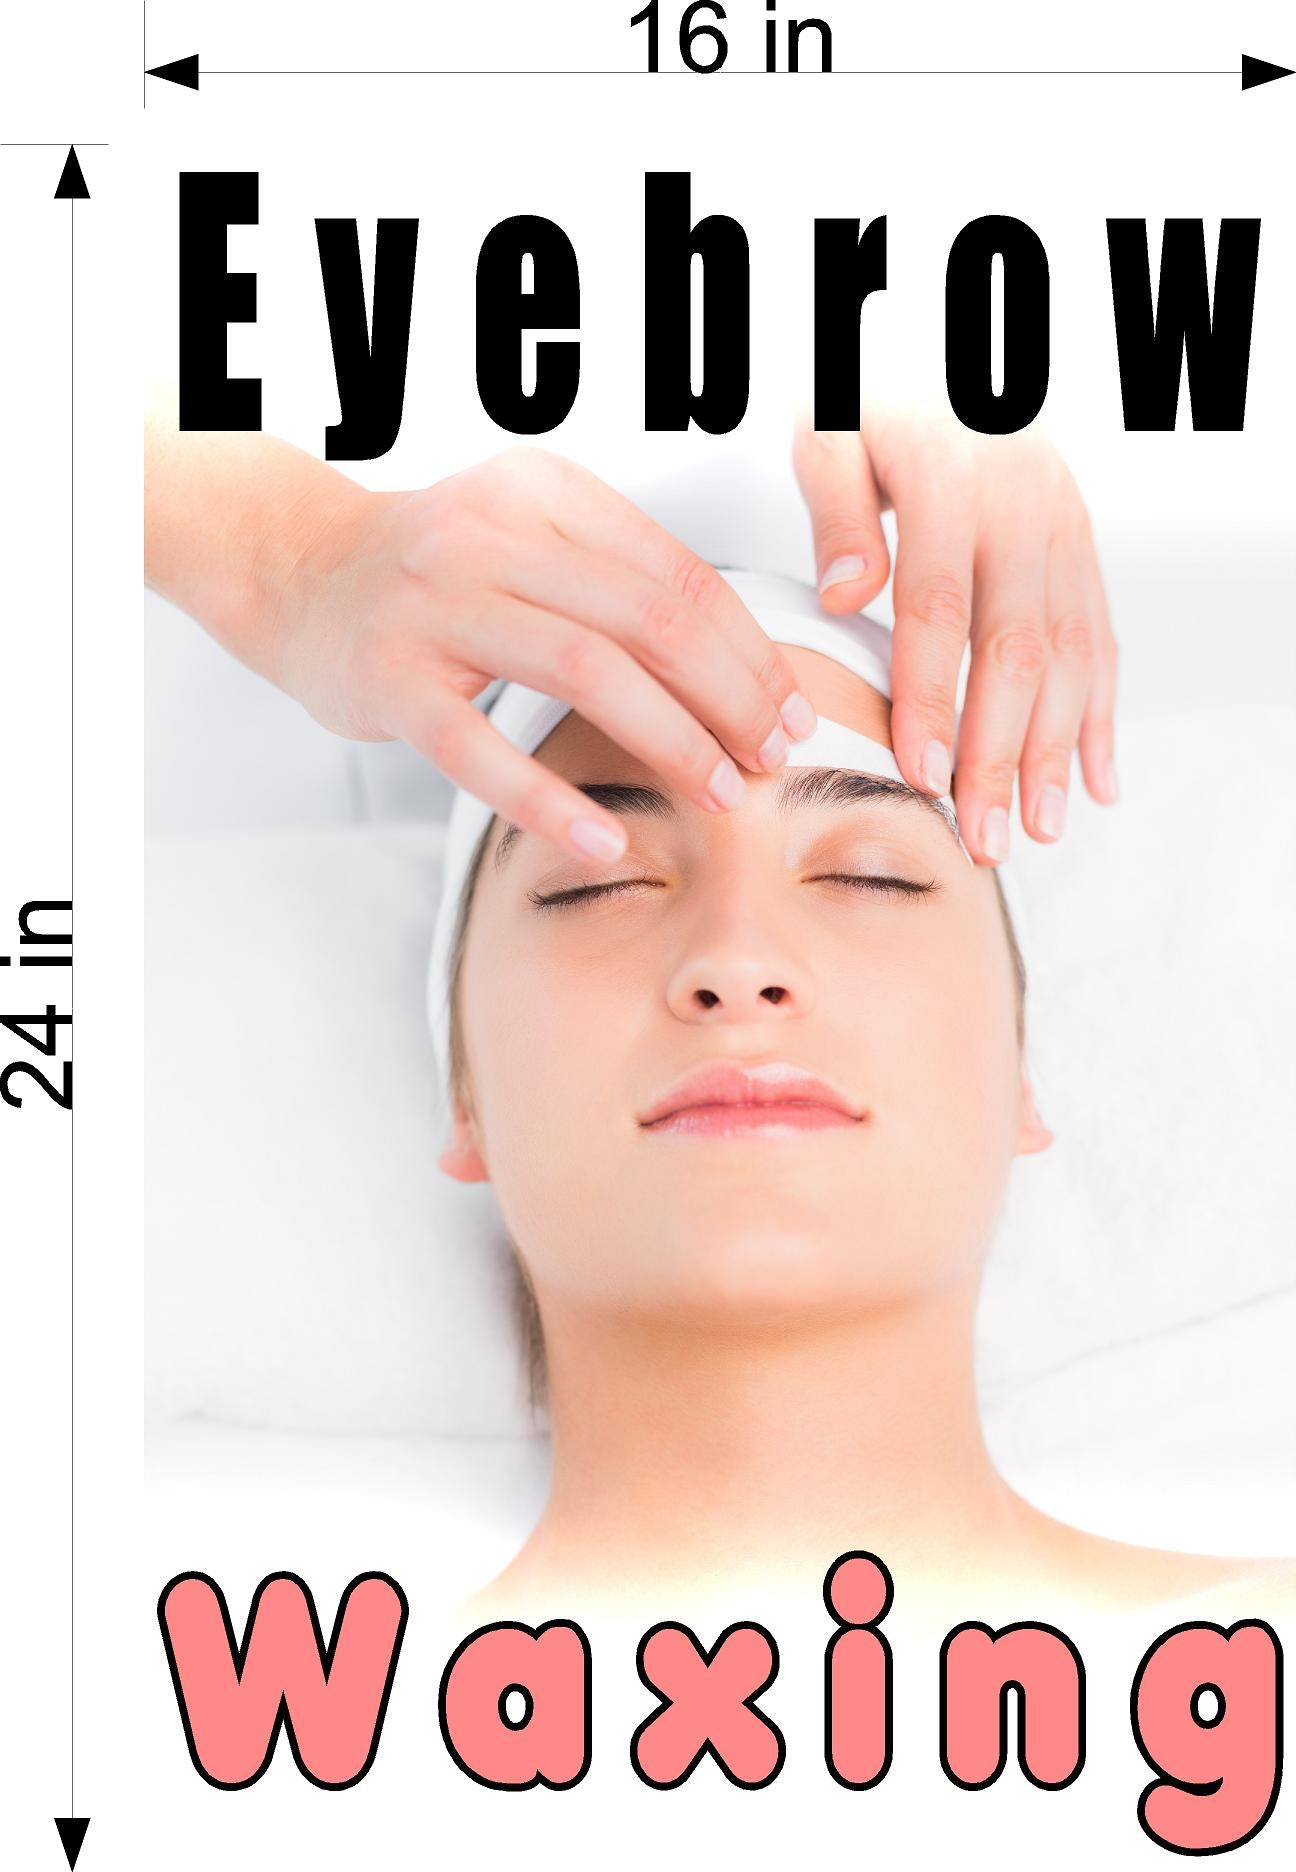 Eyebrows 08 Photo-Realistic Paper Poster Premium Matte Interior Inside Sign Advertising Marketing Wall Window Non-Laminated Waxing Vertical